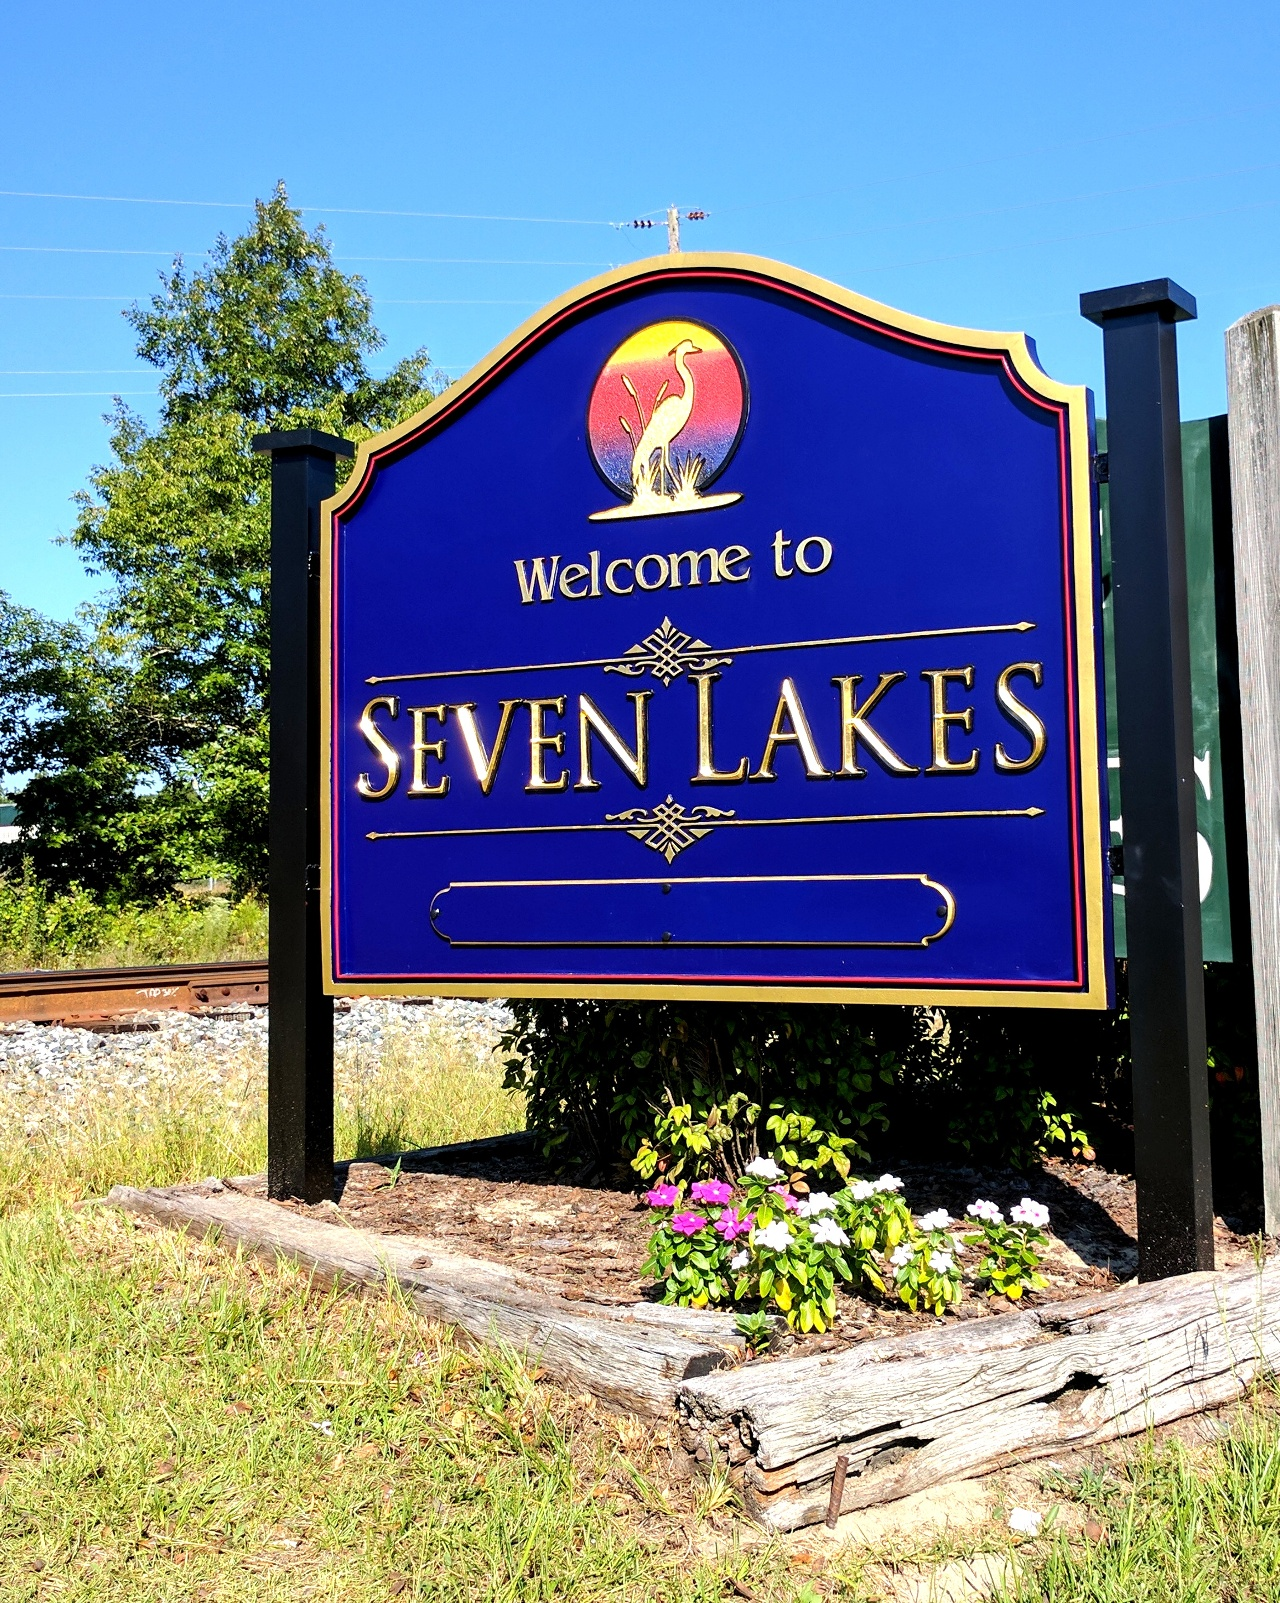 seven lakes community city entrance sign 23kt gold prismatic letters classic signs nc1280x1024